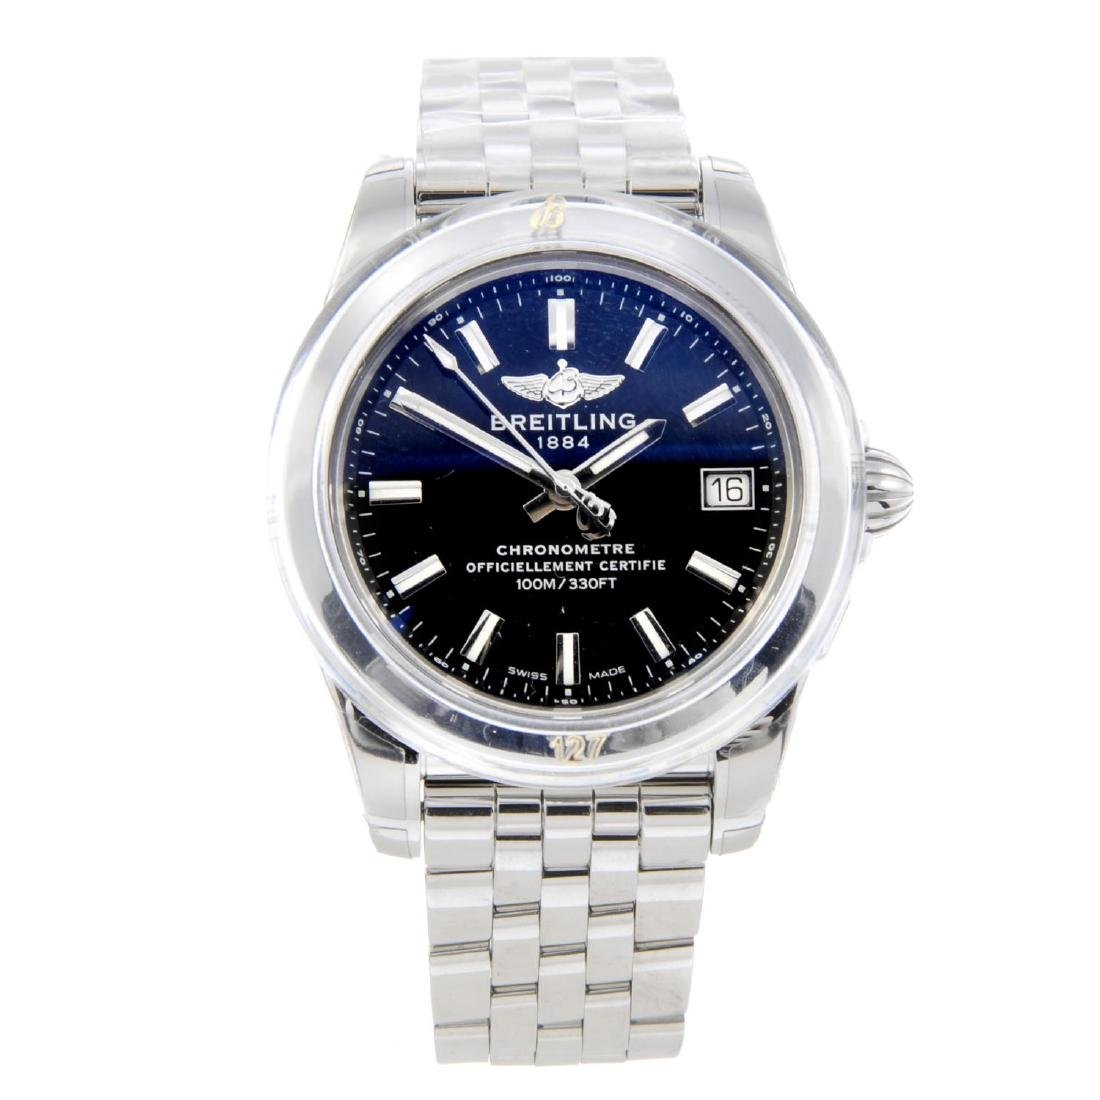 BREITLING - a lady's Galactic bracelet watch. Stainless